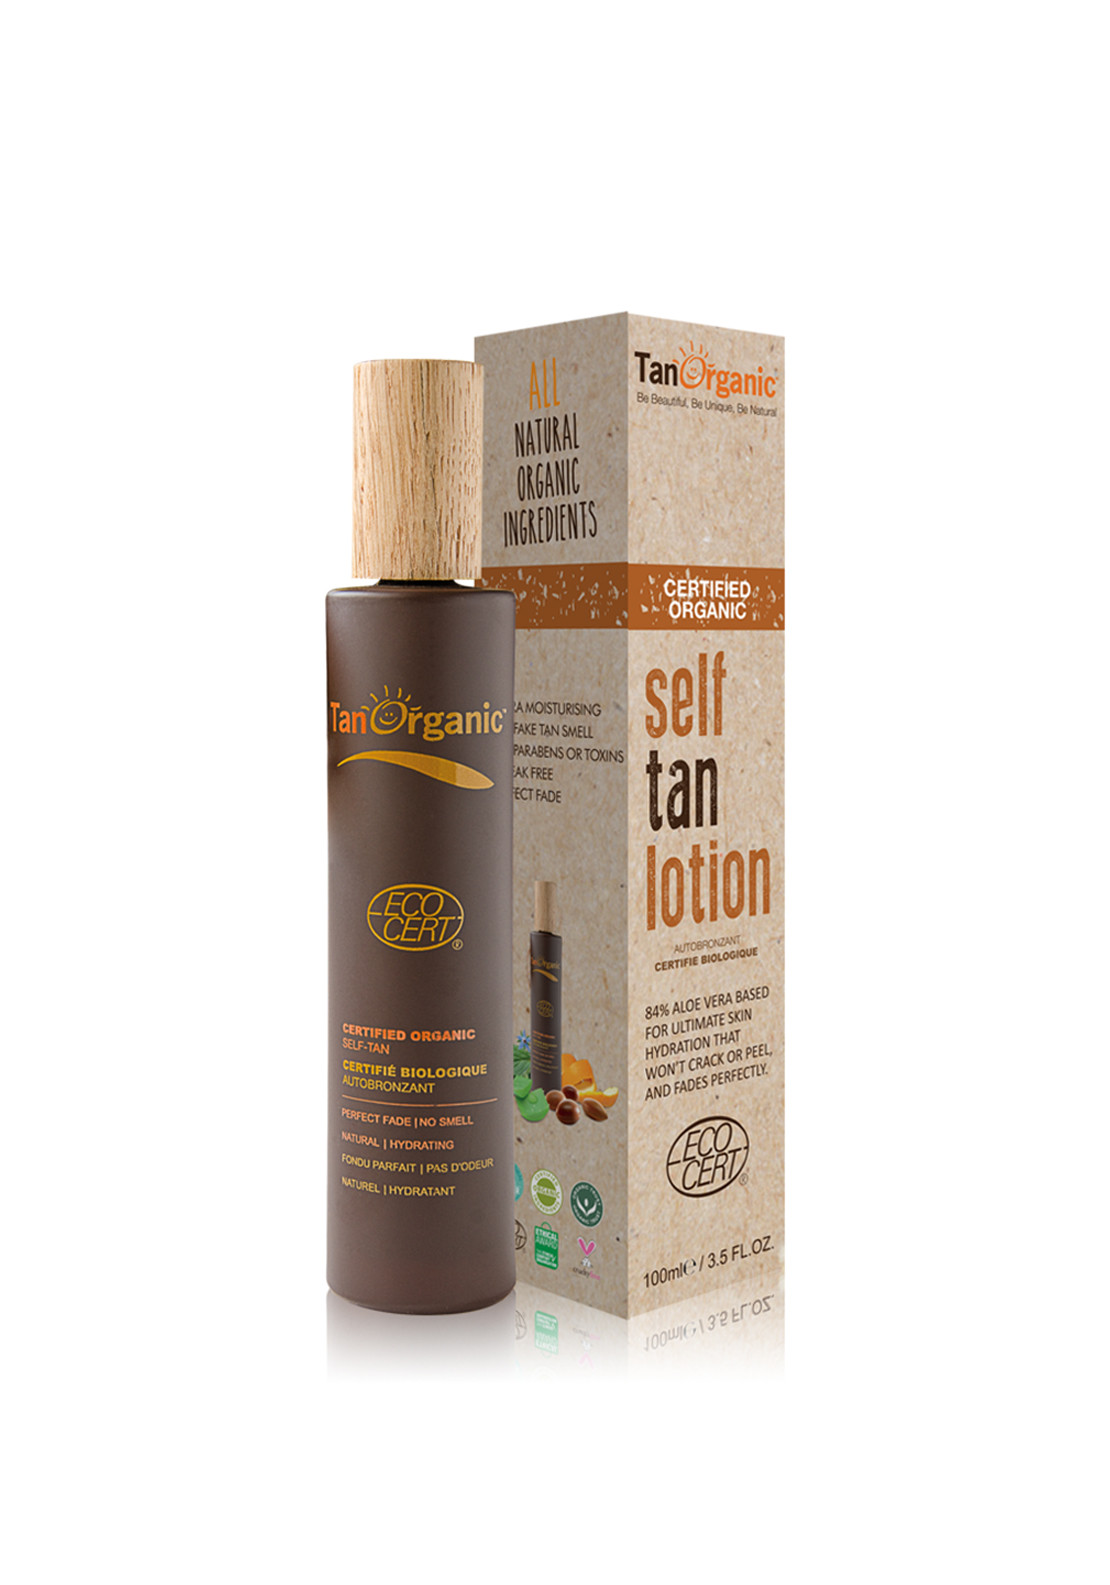 Tan Organic Self Tan Lotion, 100ml